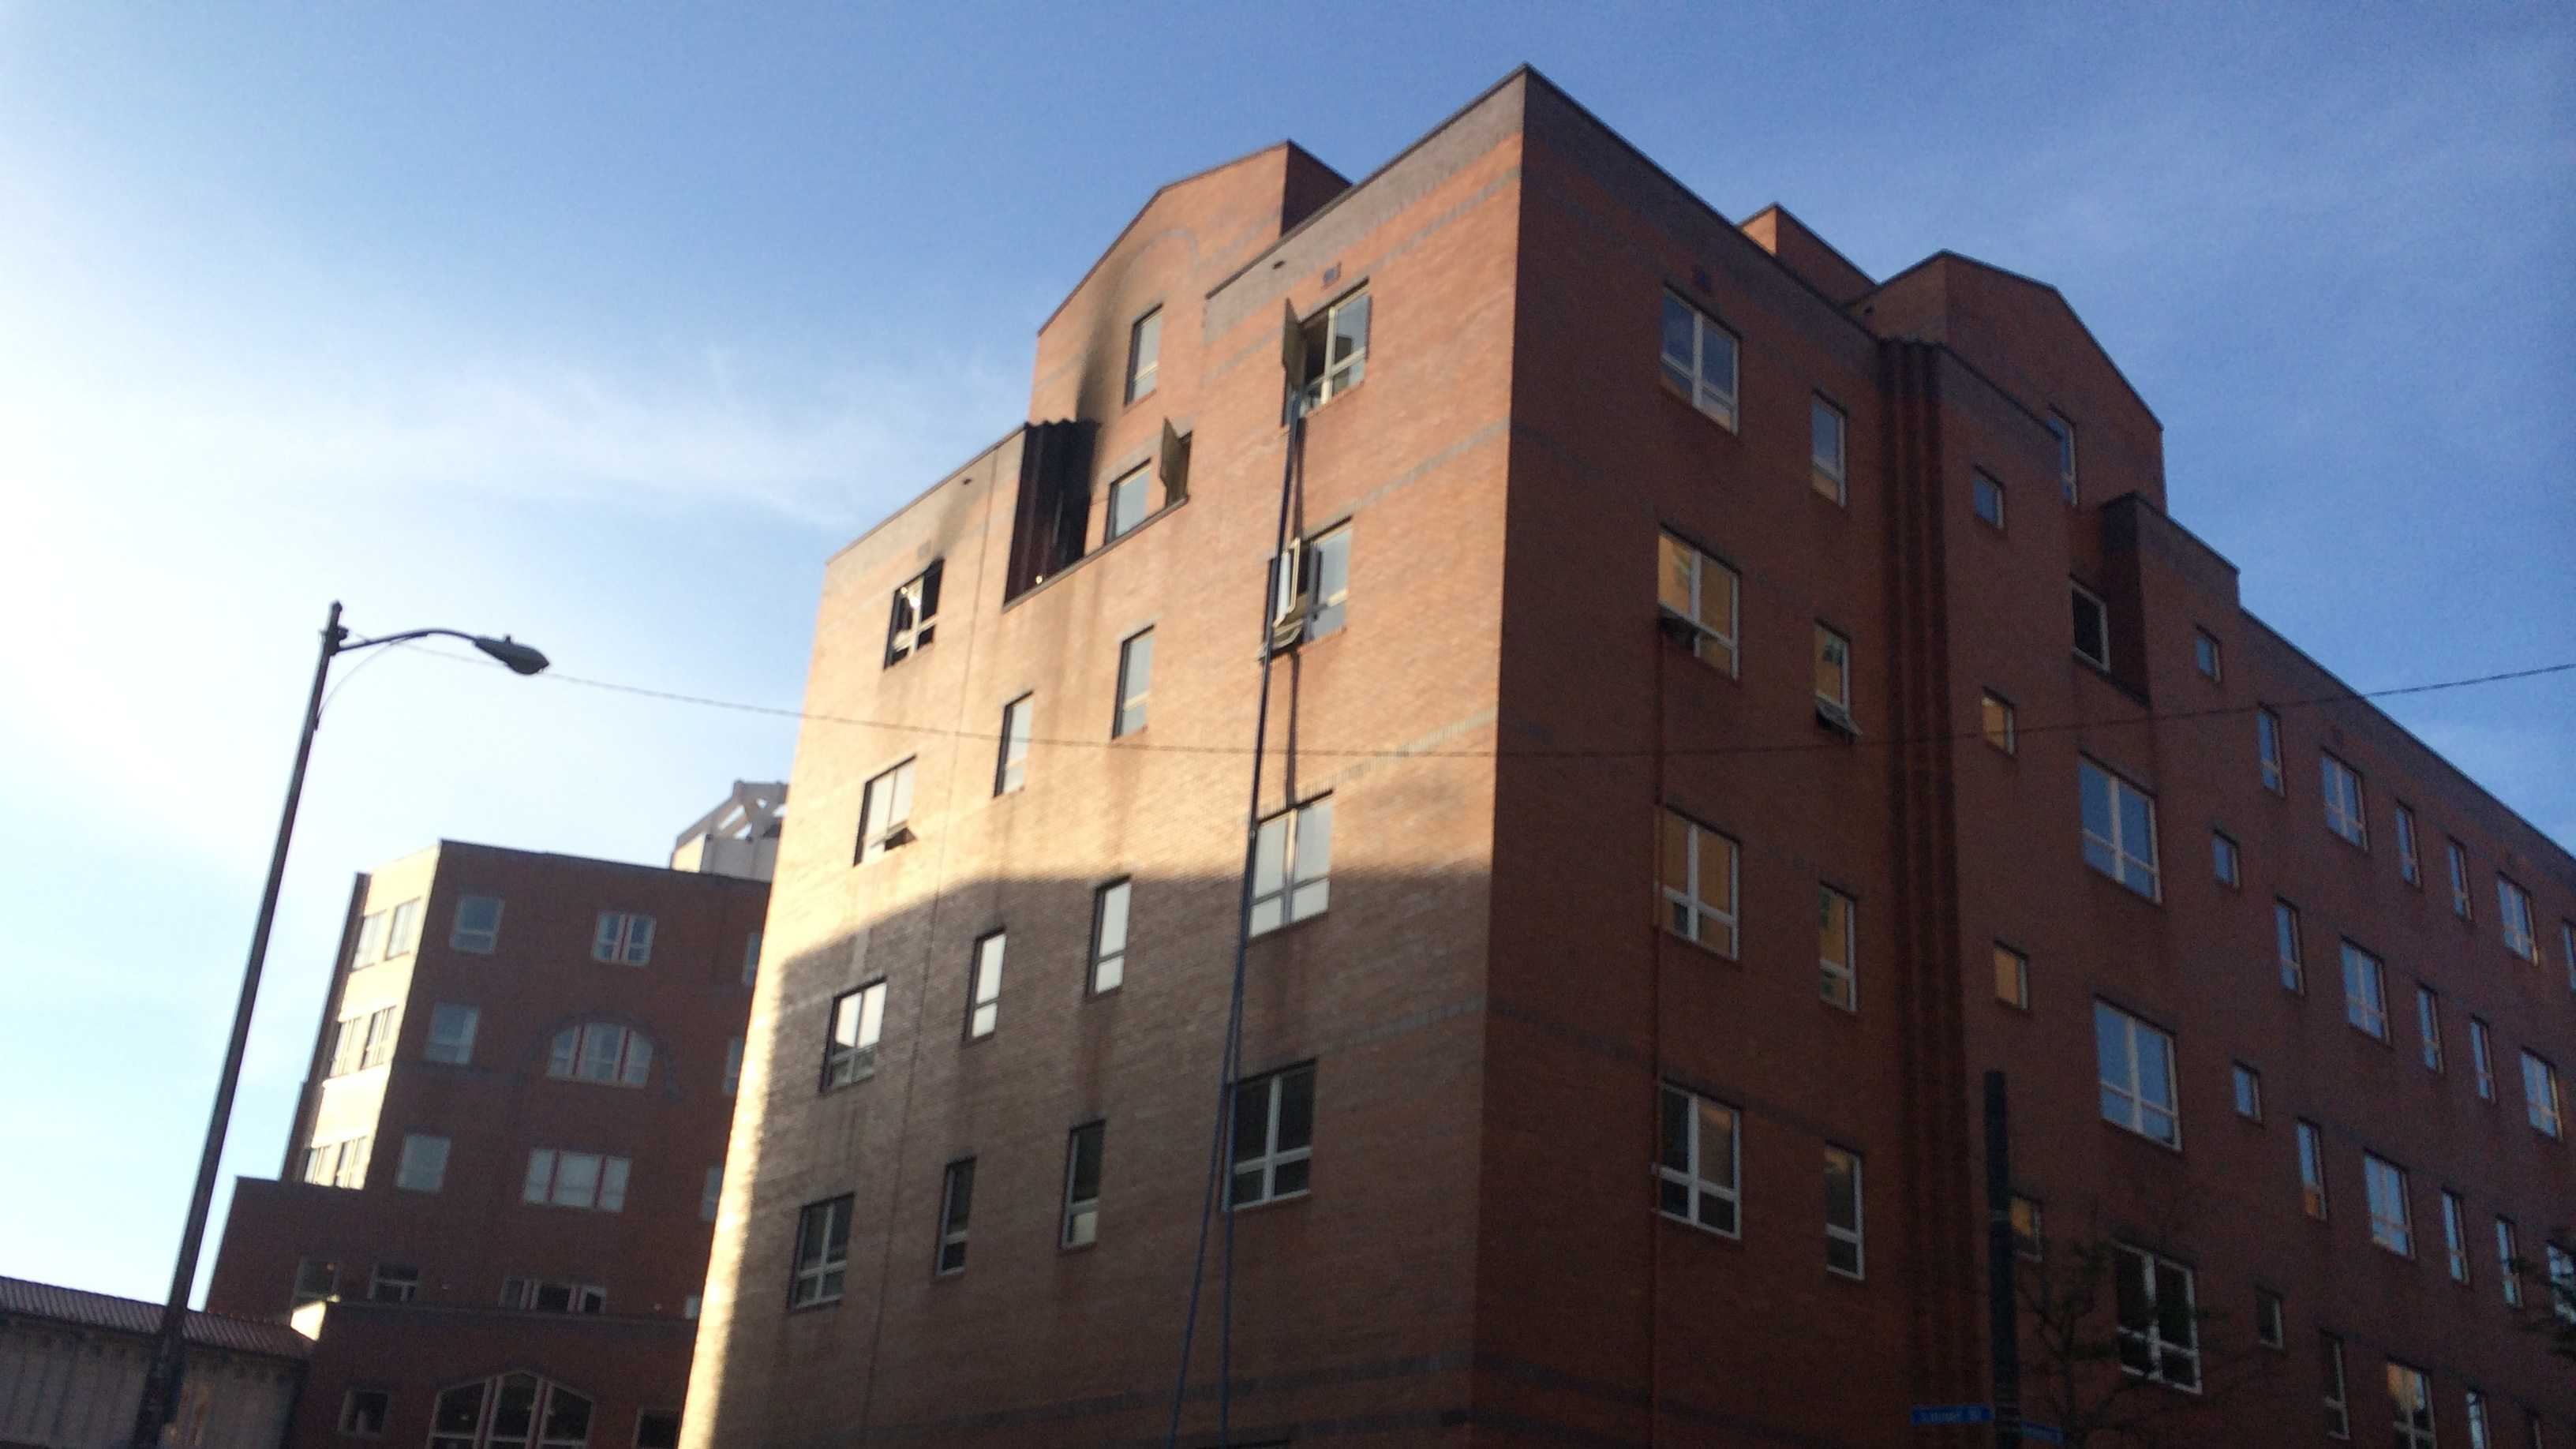 The fire occurred overnight in a building next to UPMC Mercy Hospital that houses medical offices.